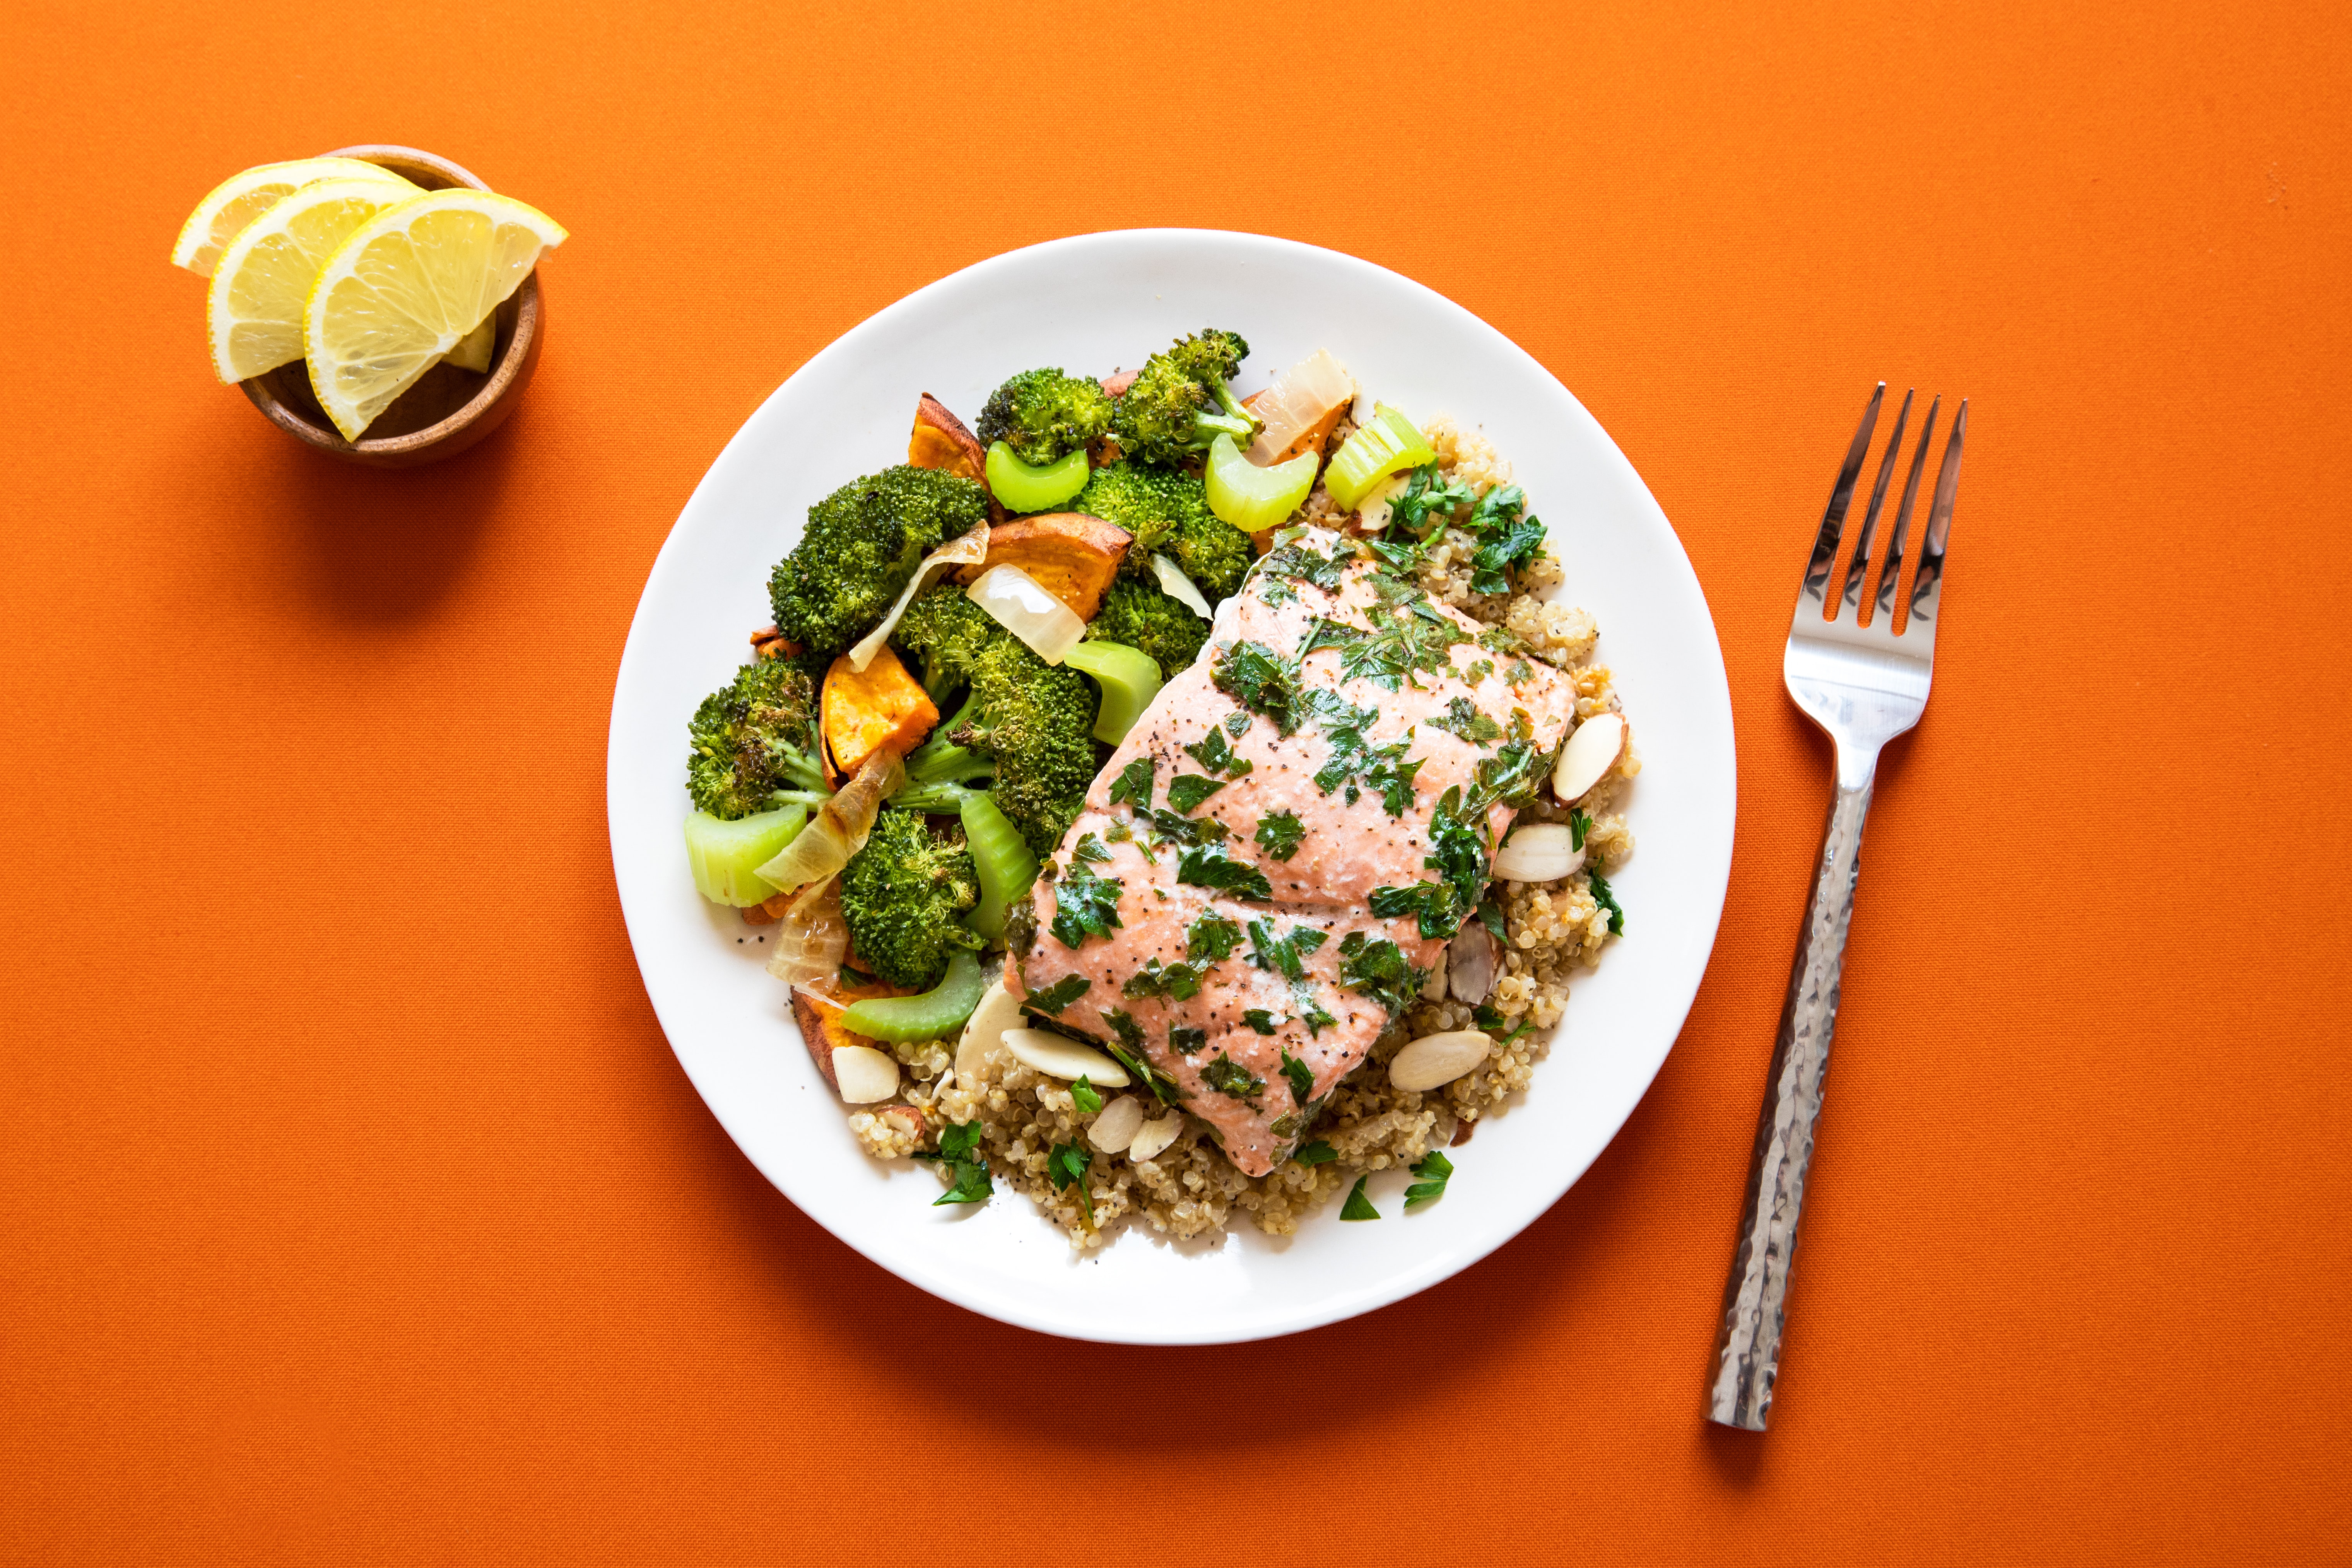 meal mealtime mindful eating healthy food habits routine mindfulness lifestyle localbini biniblog vegetables nutrition